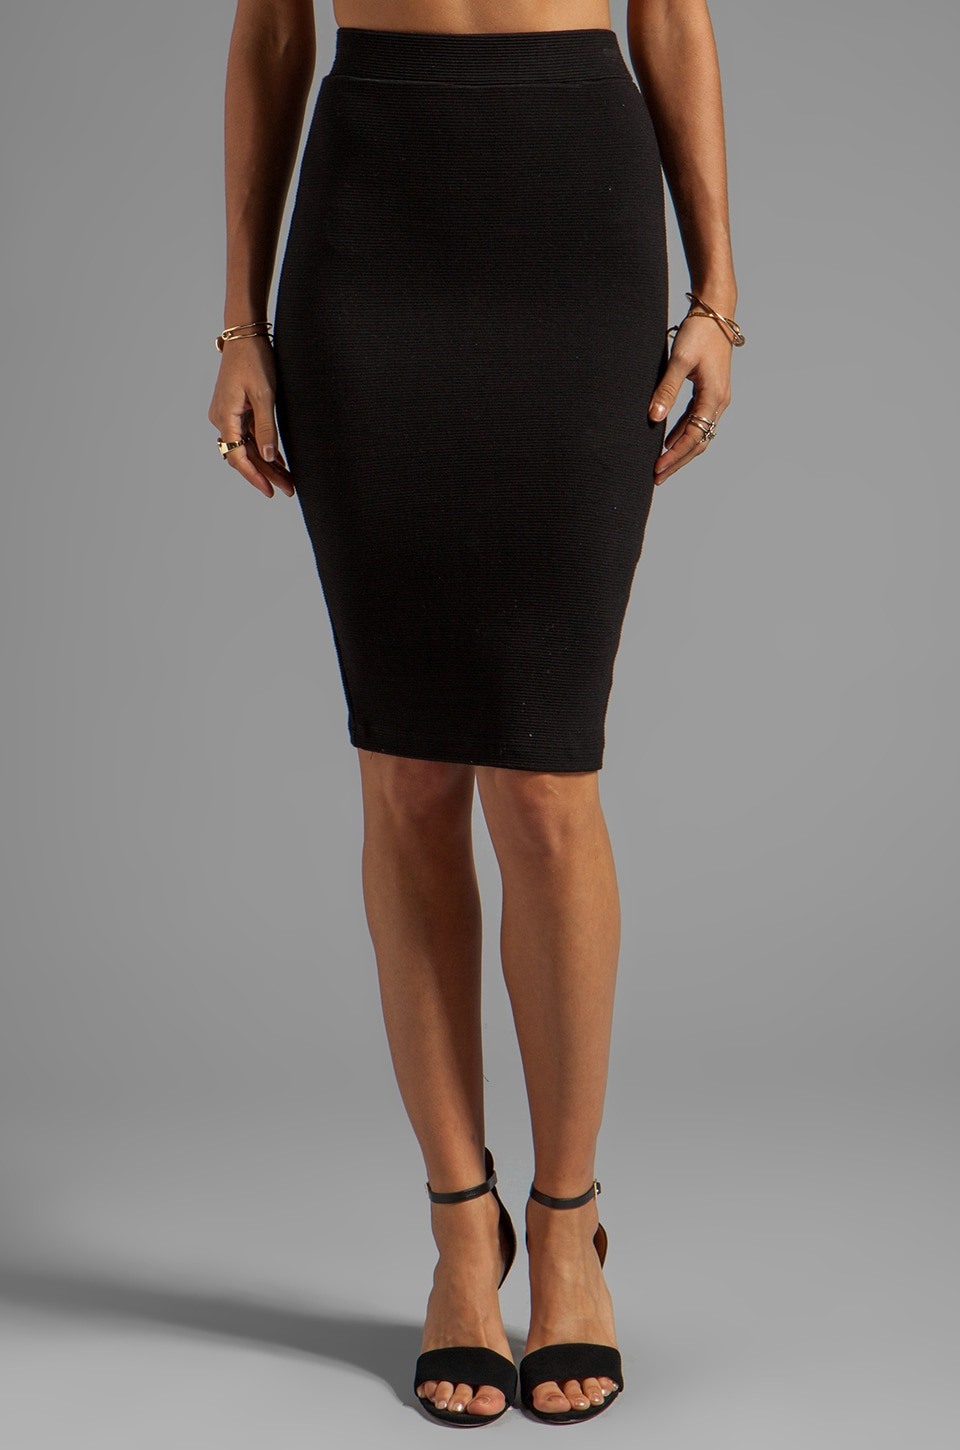 Eight Sixty Pencil Skirt in Black